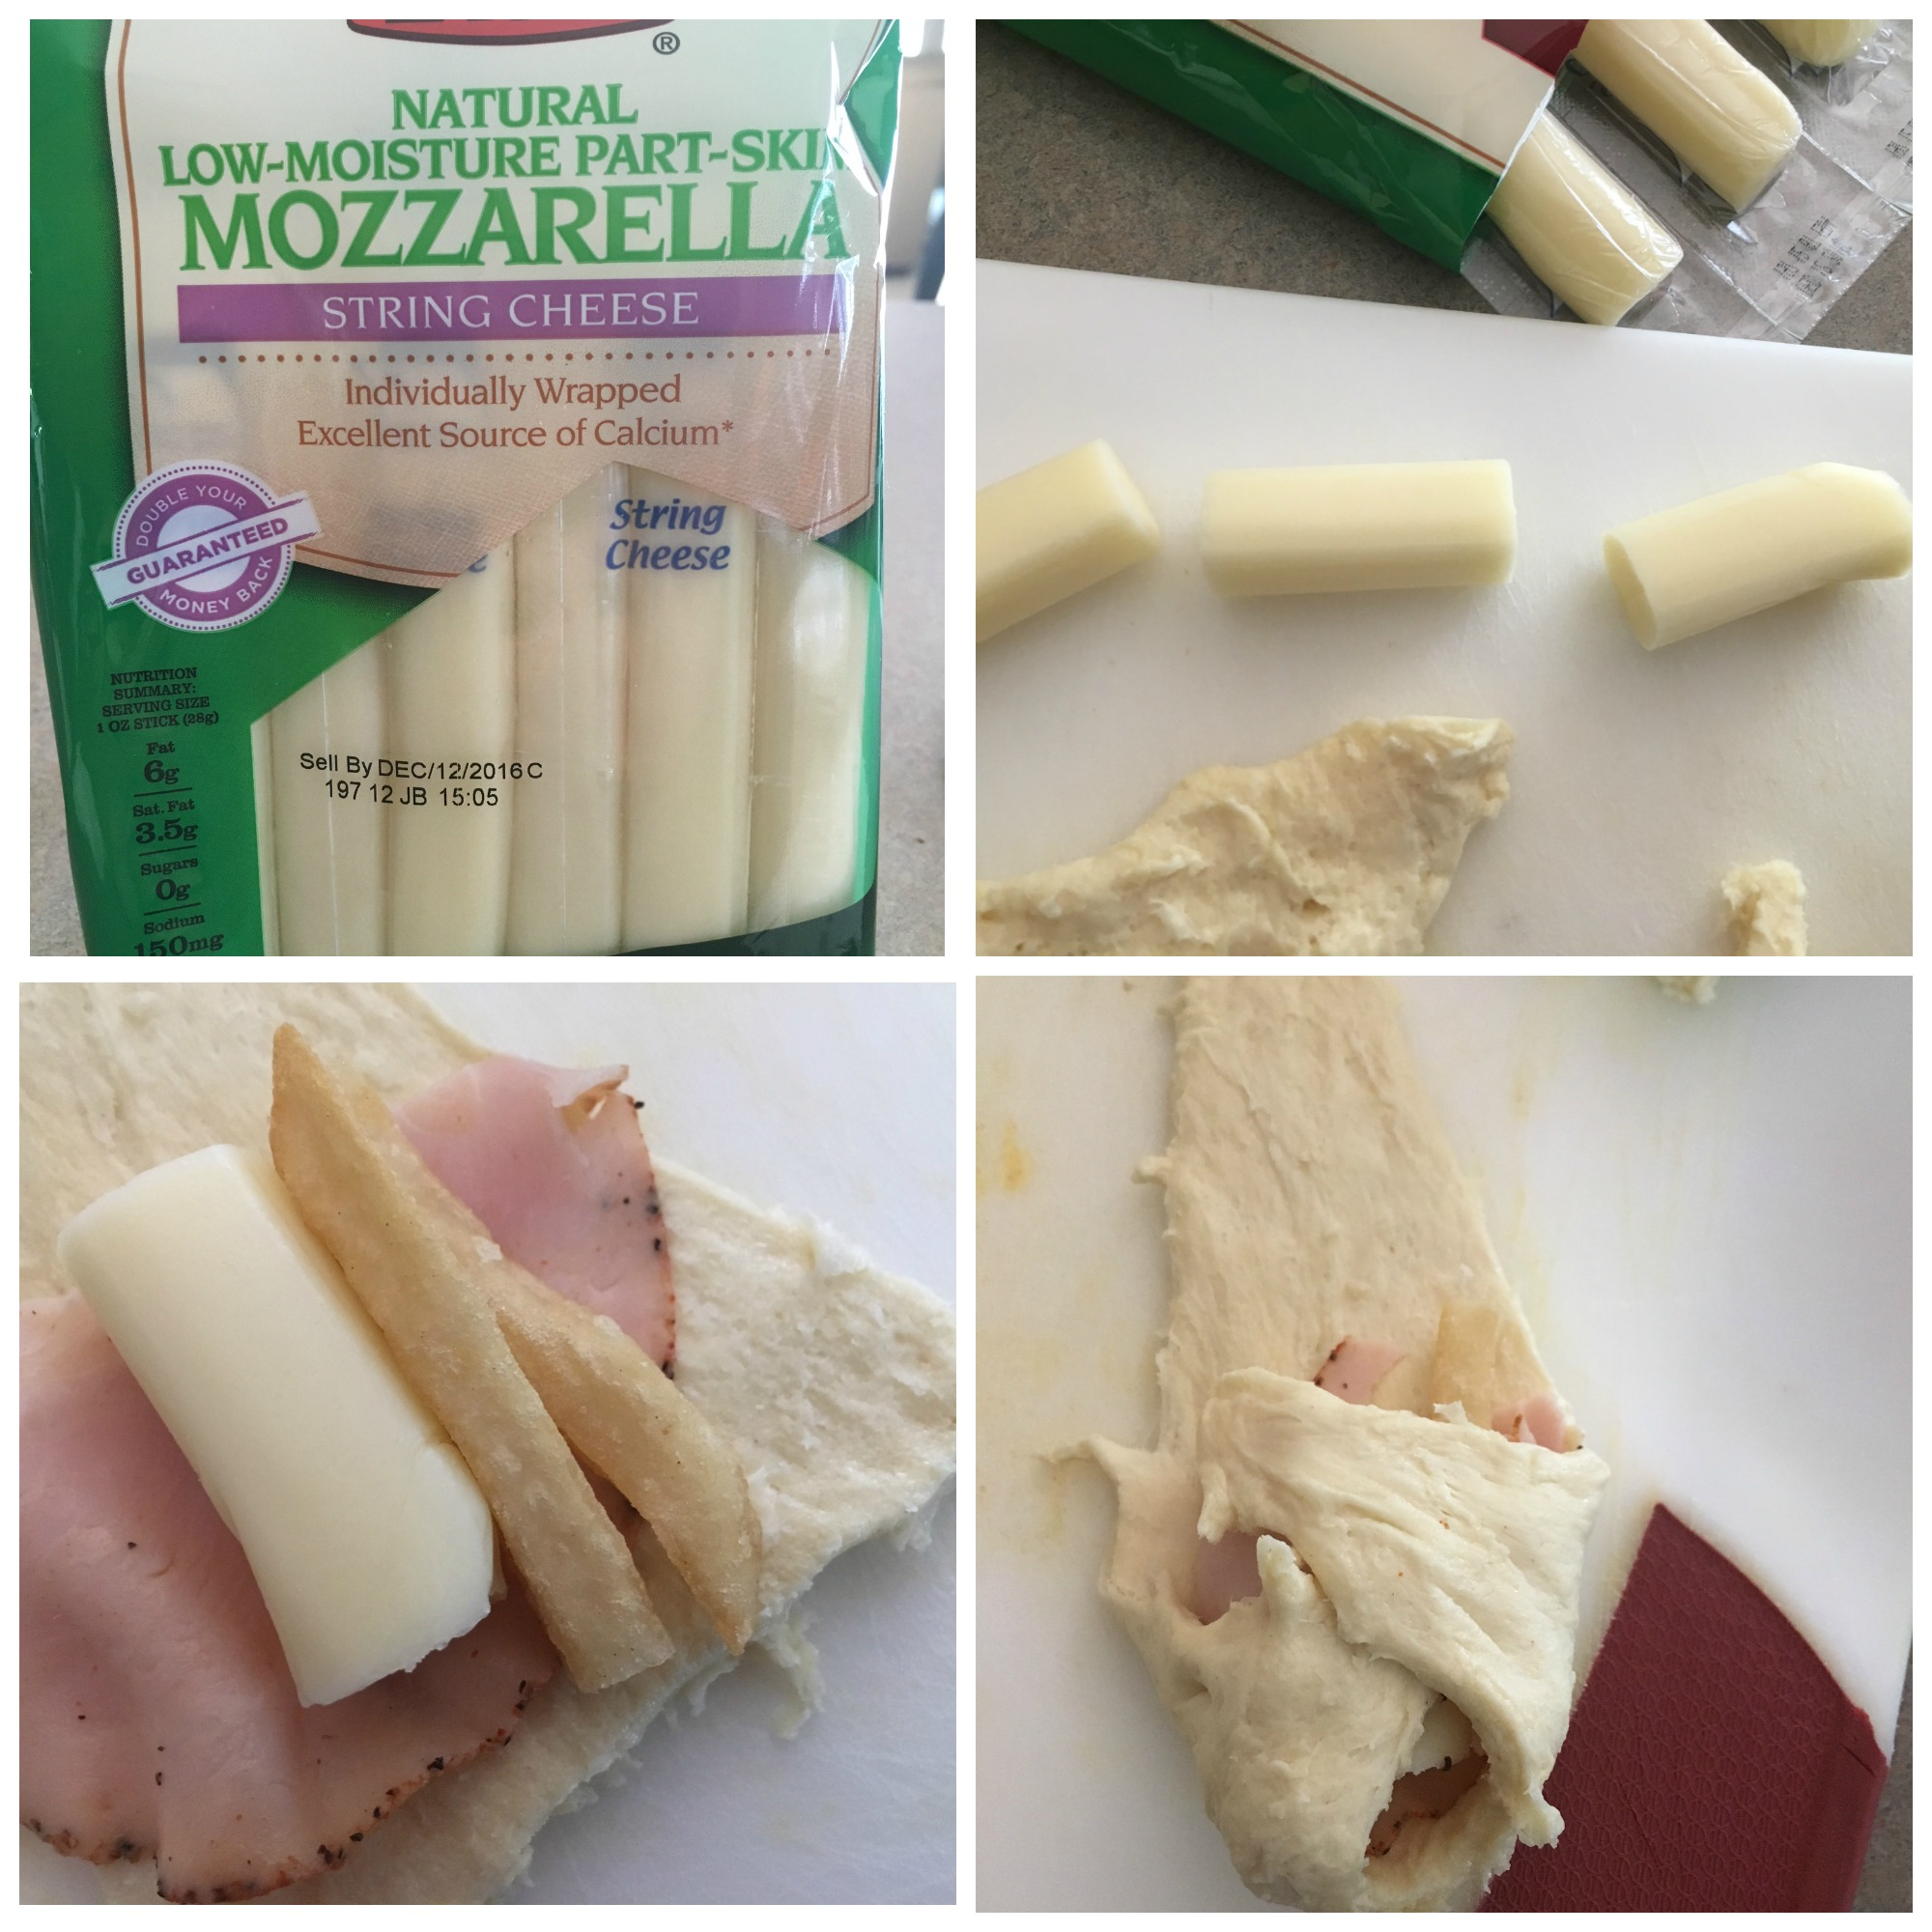 Turkey & Cheese Panini Poppers | Giant Eagle Back to School | Money Savvy Living